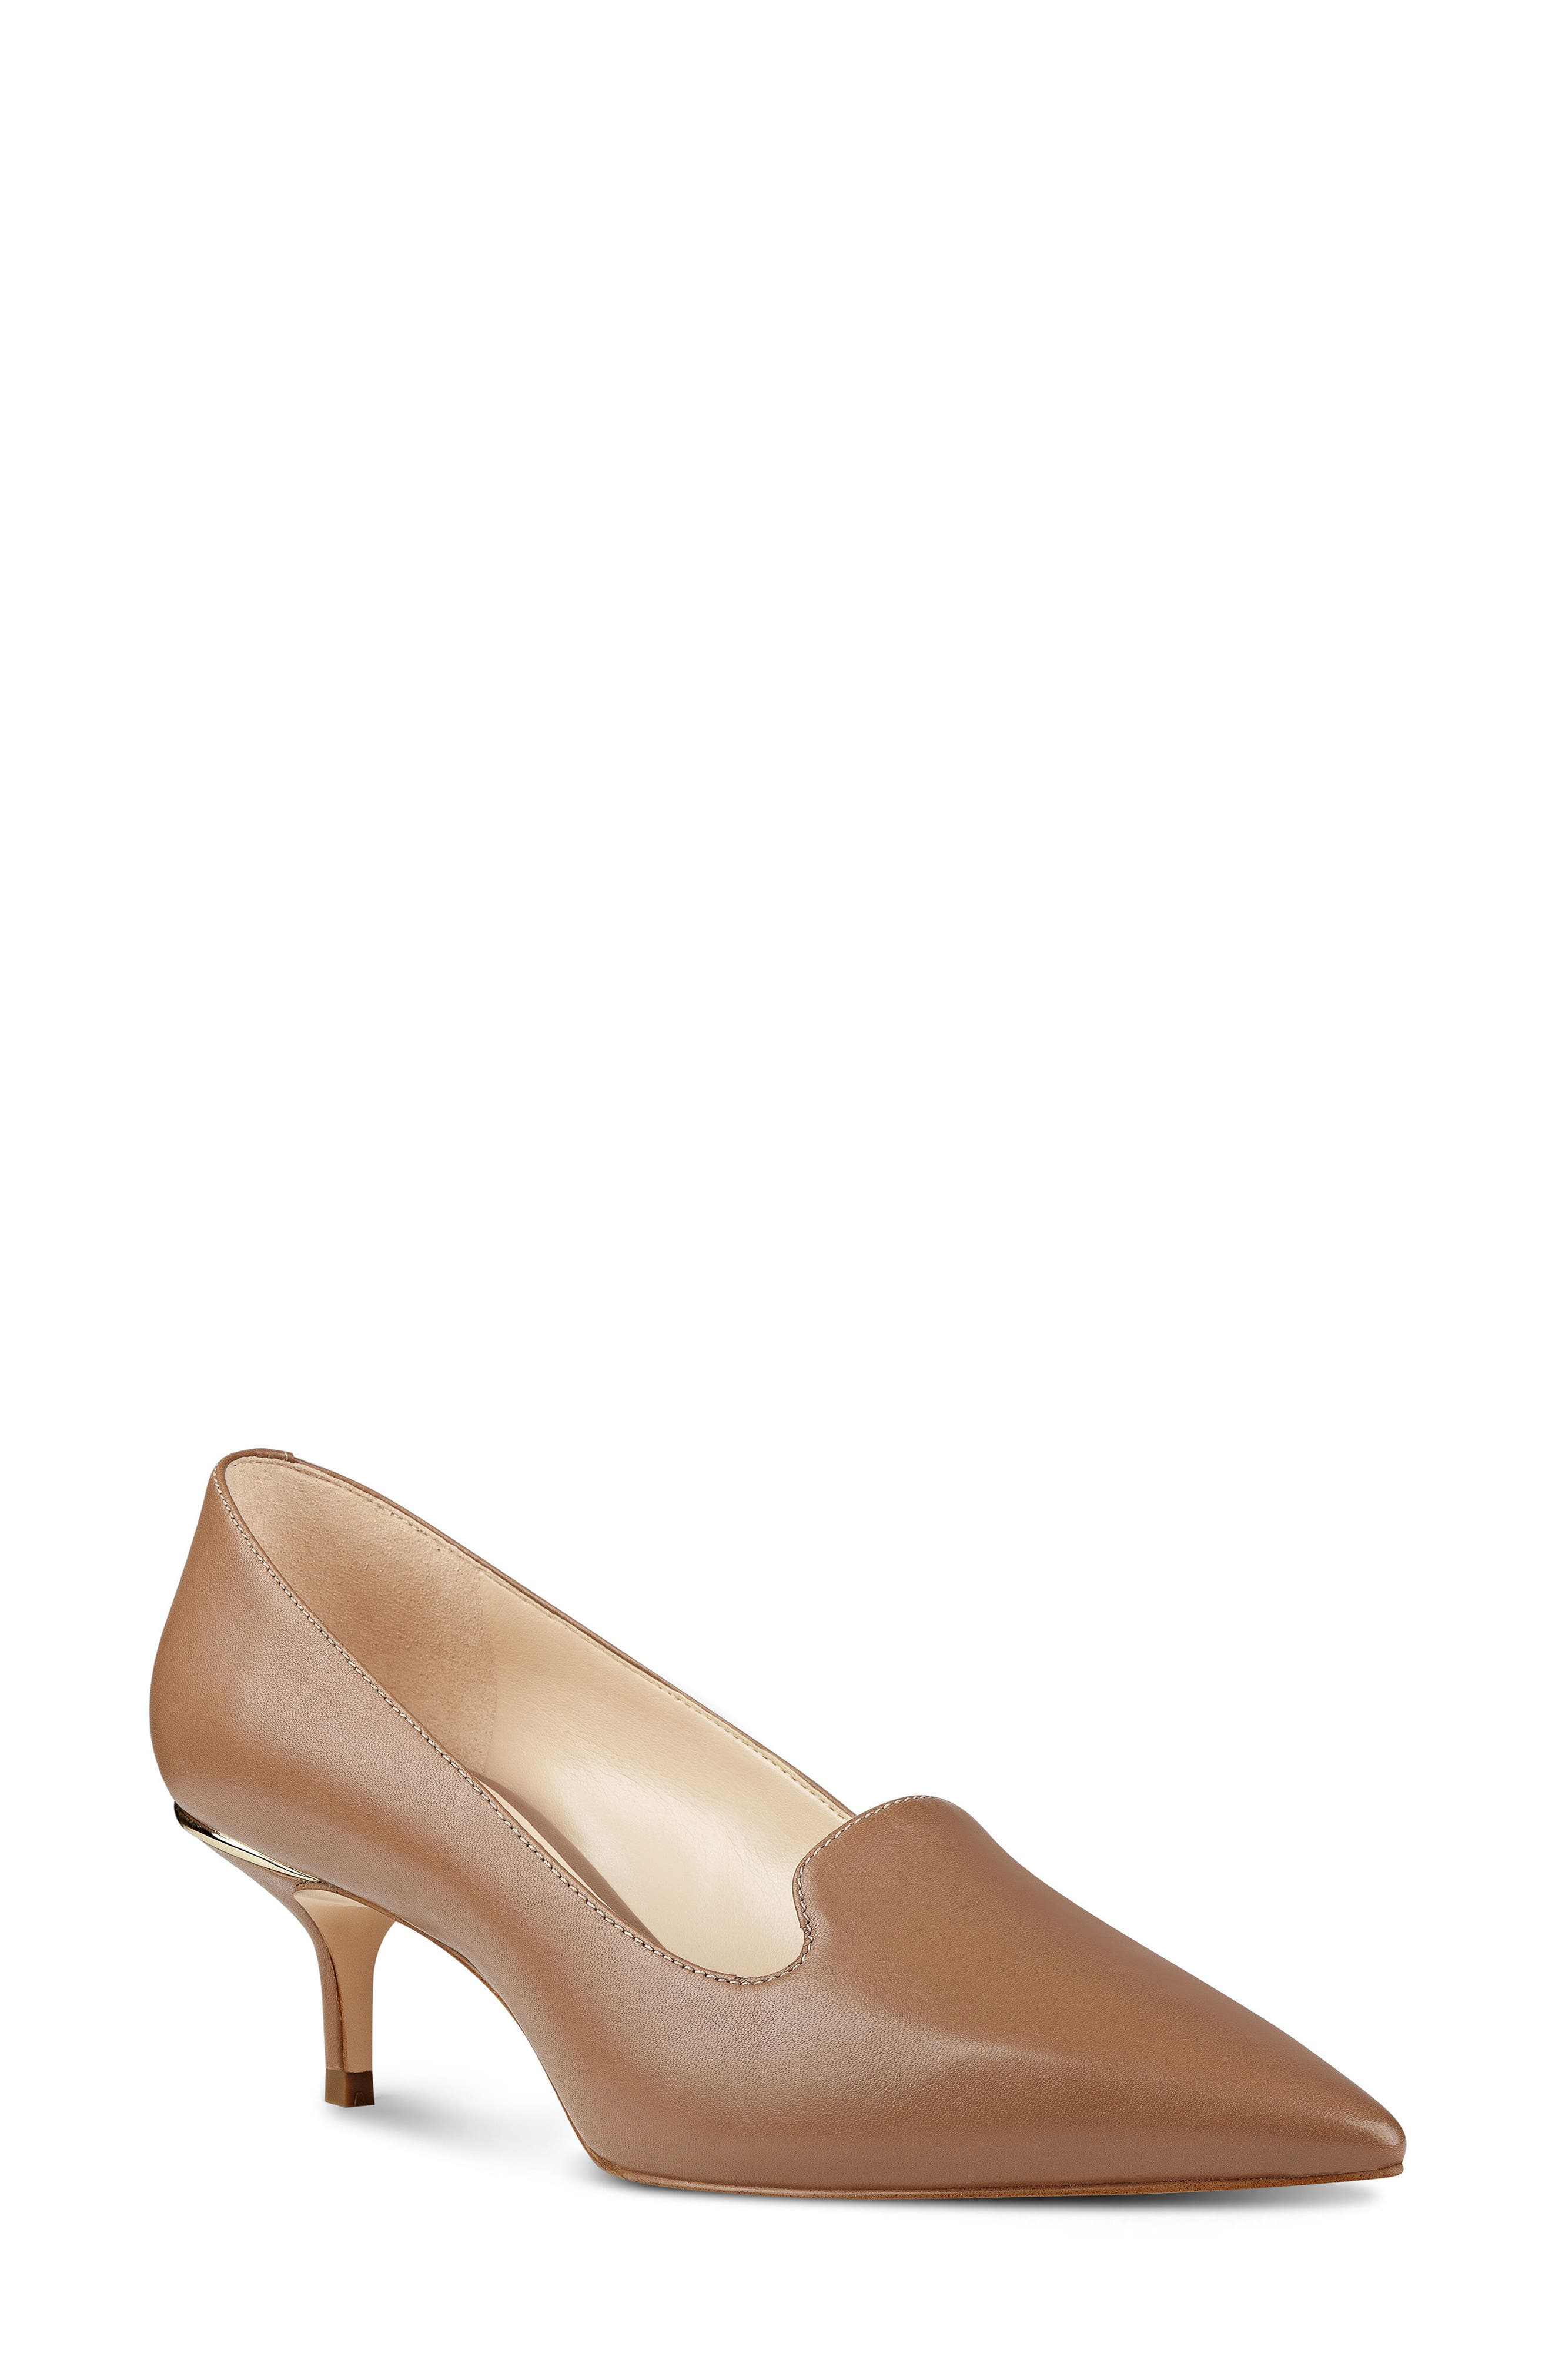 Main Image - Nine West Freddee Loafer Pump (Women)